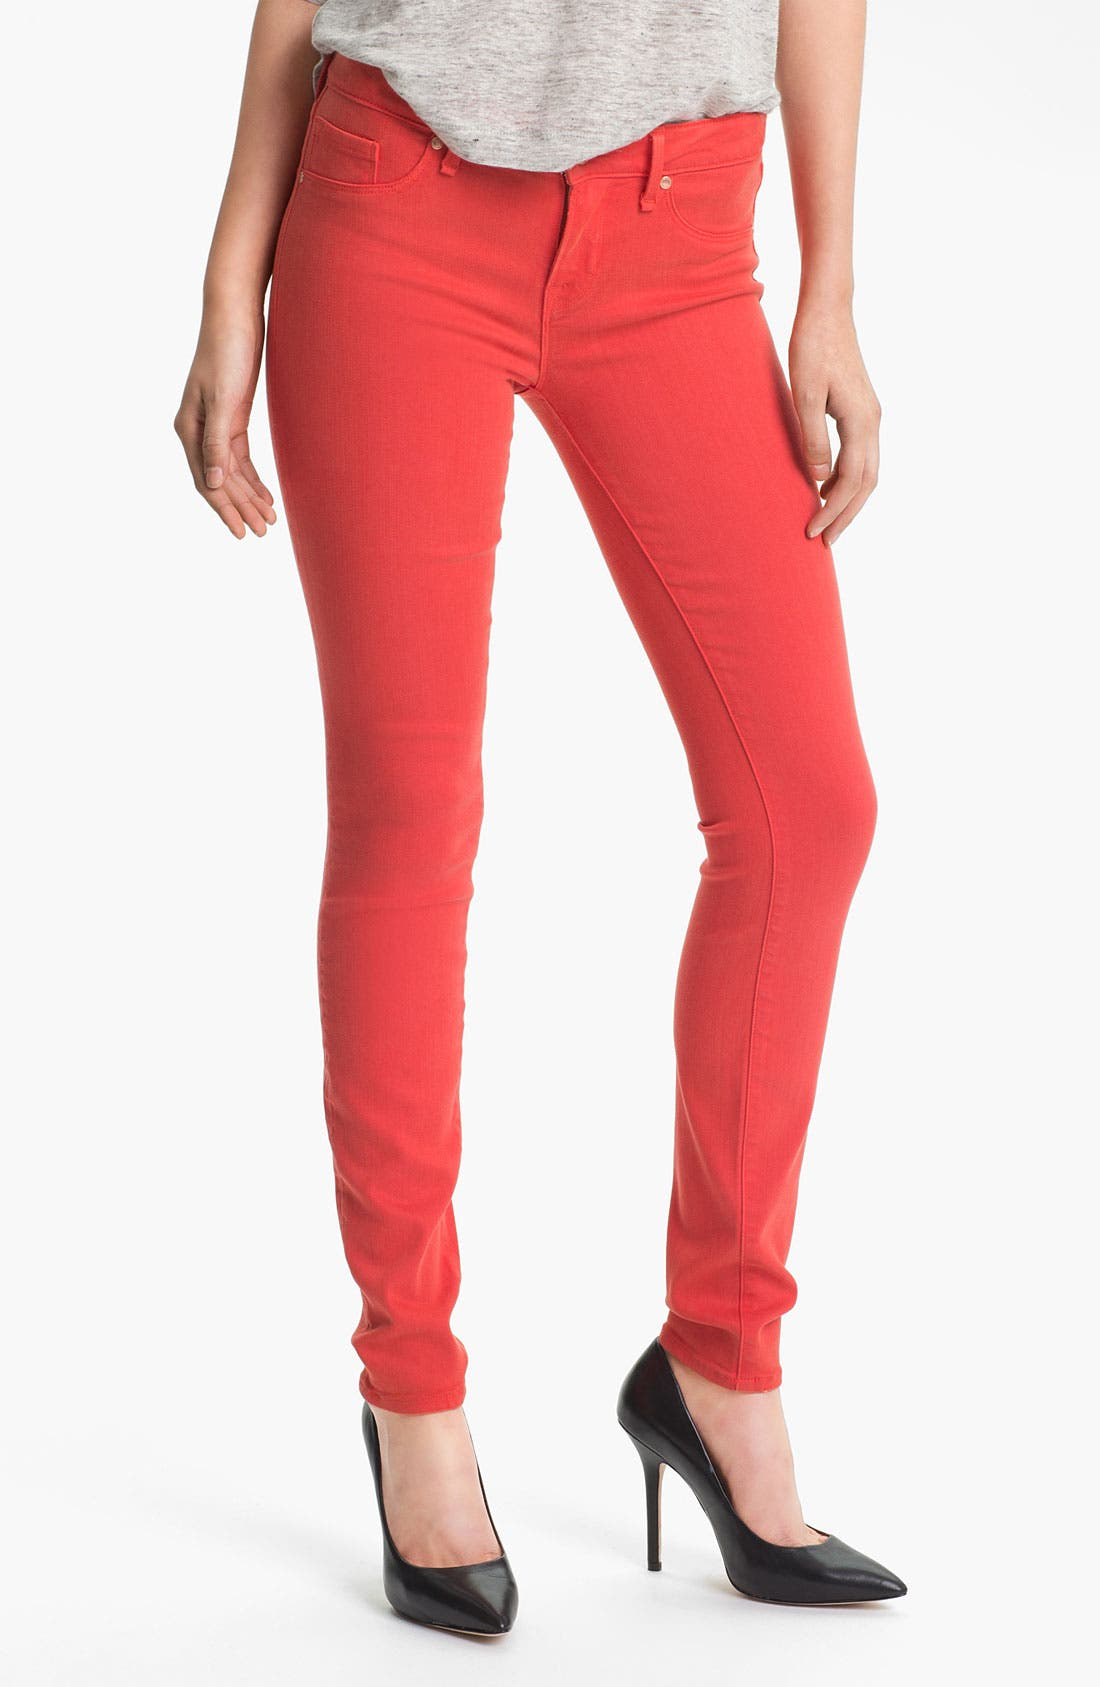 Main Image - MARC BY MARC JACOBS 'Stick' Colored Skinny Stretch Jeans (Flamingo Red)